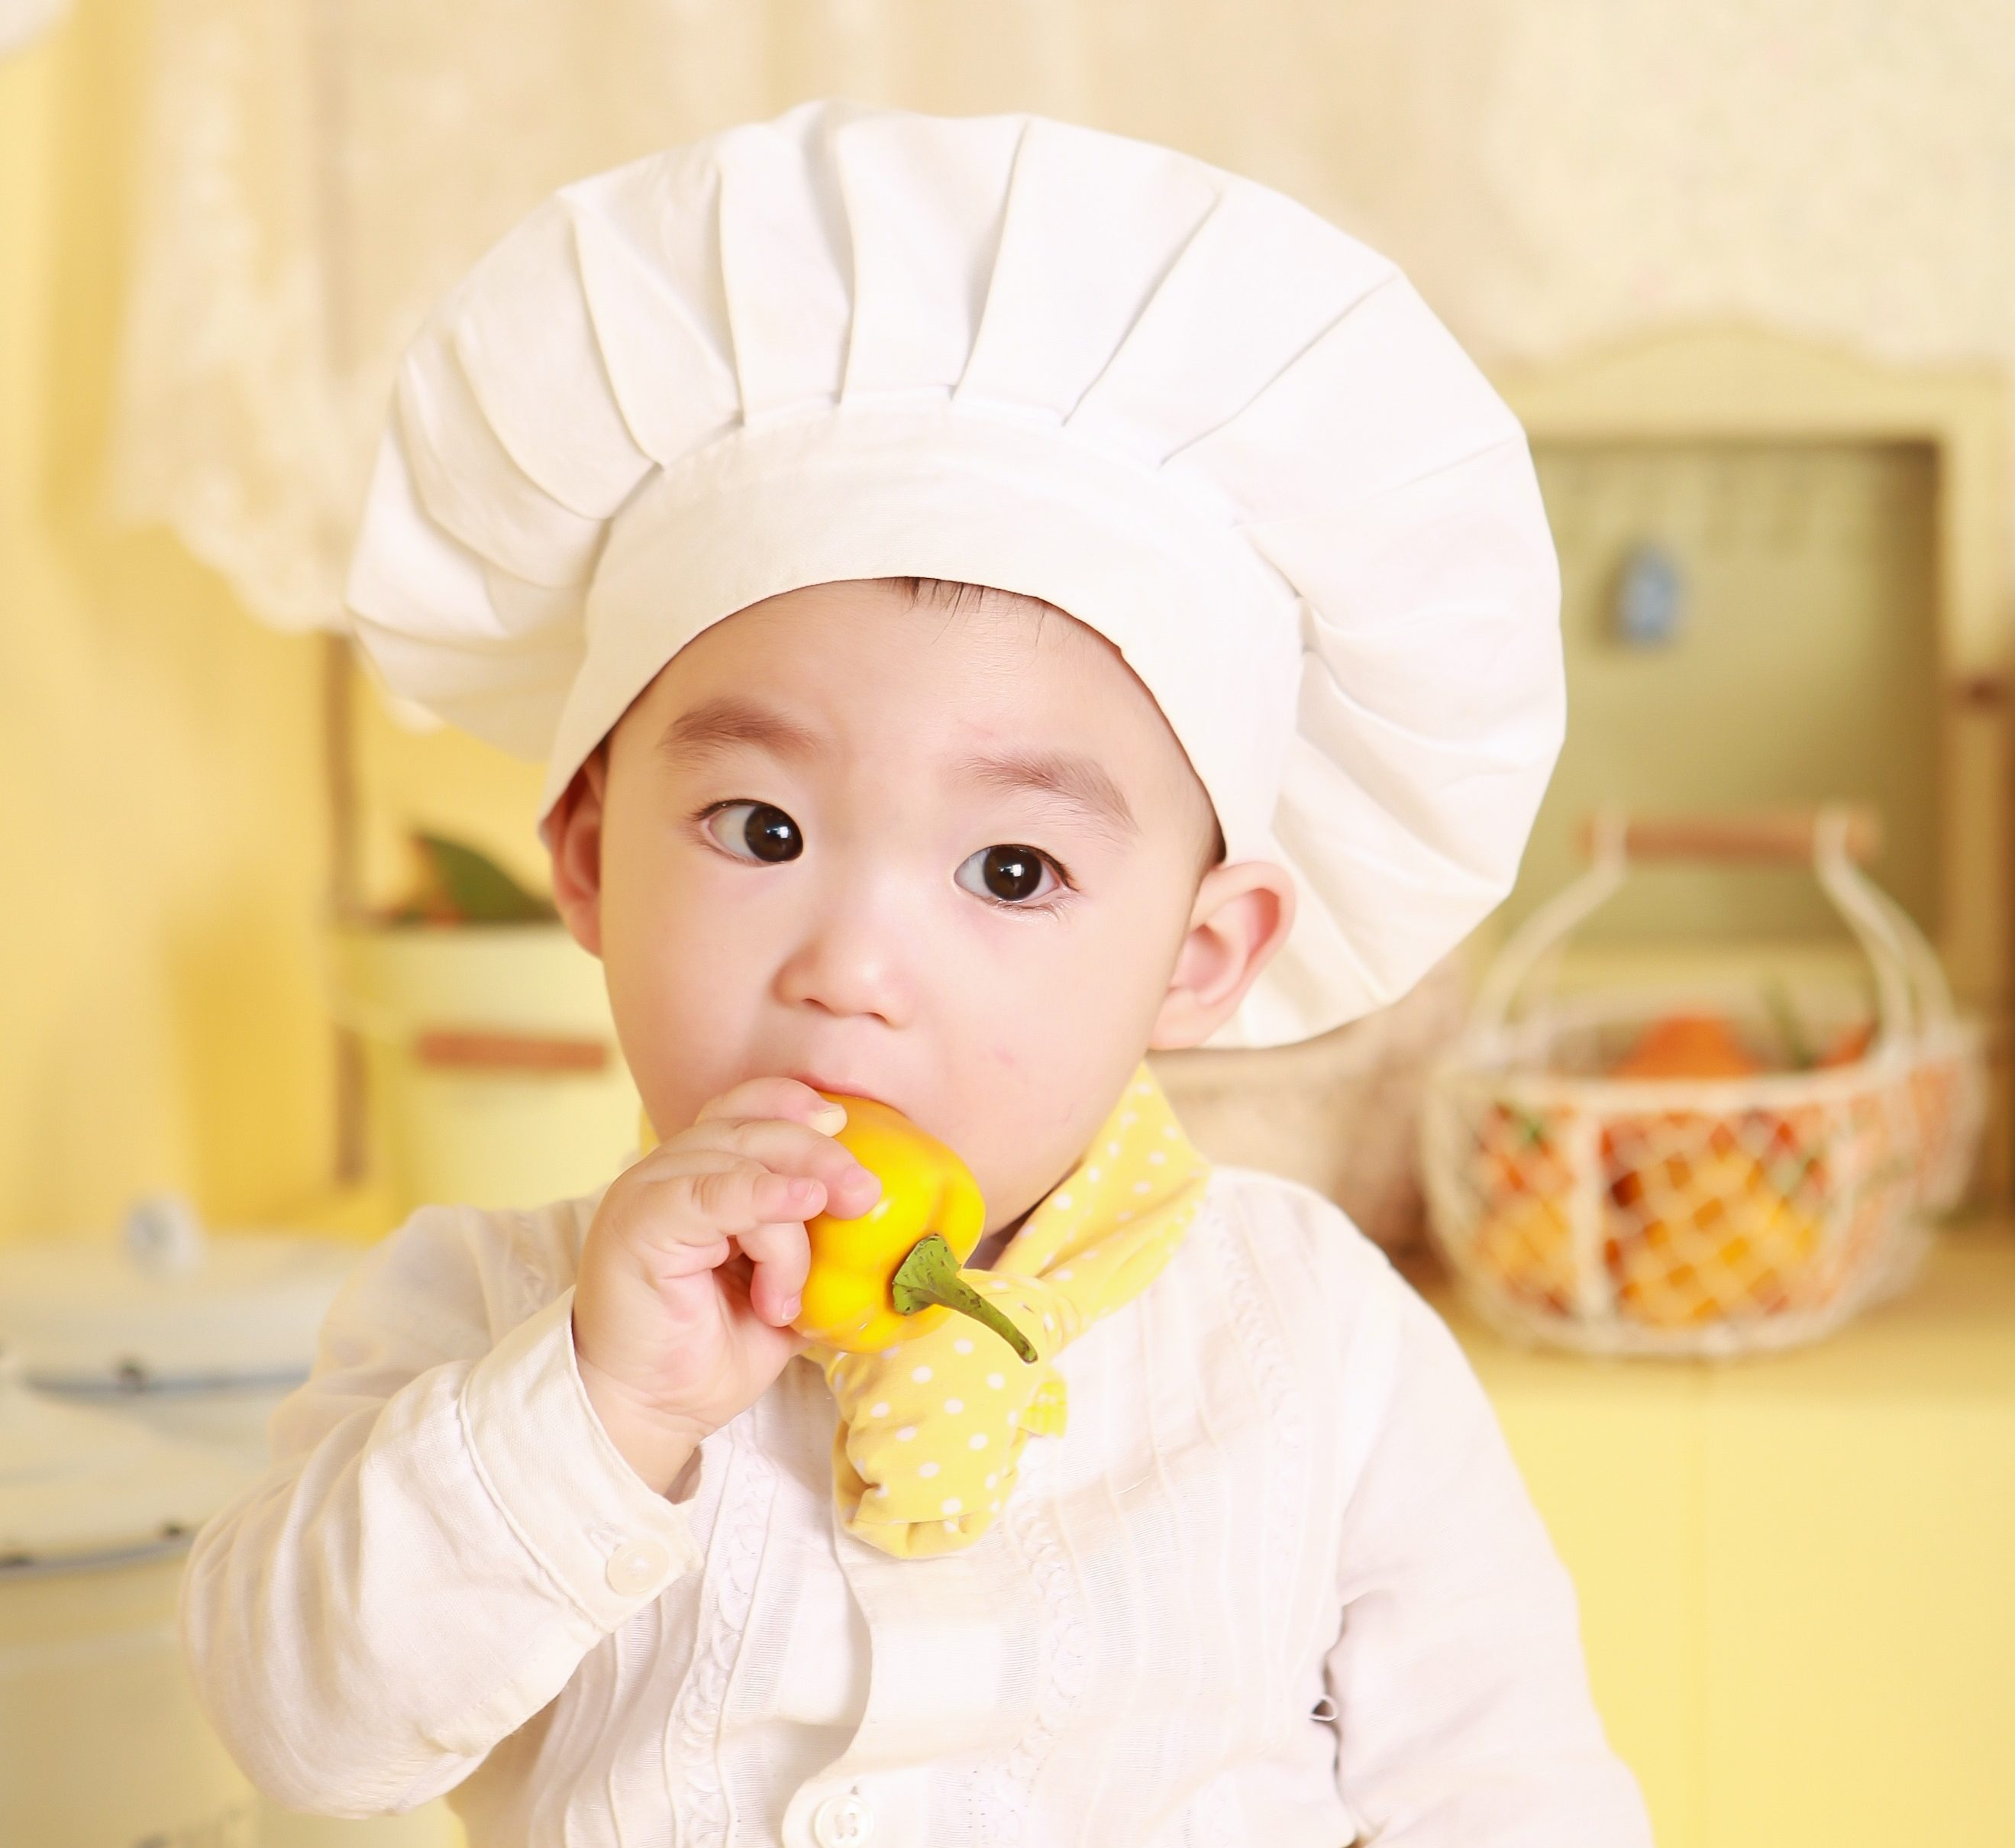 The Healthy Habits Series: Kids in the Kitchen Challenge